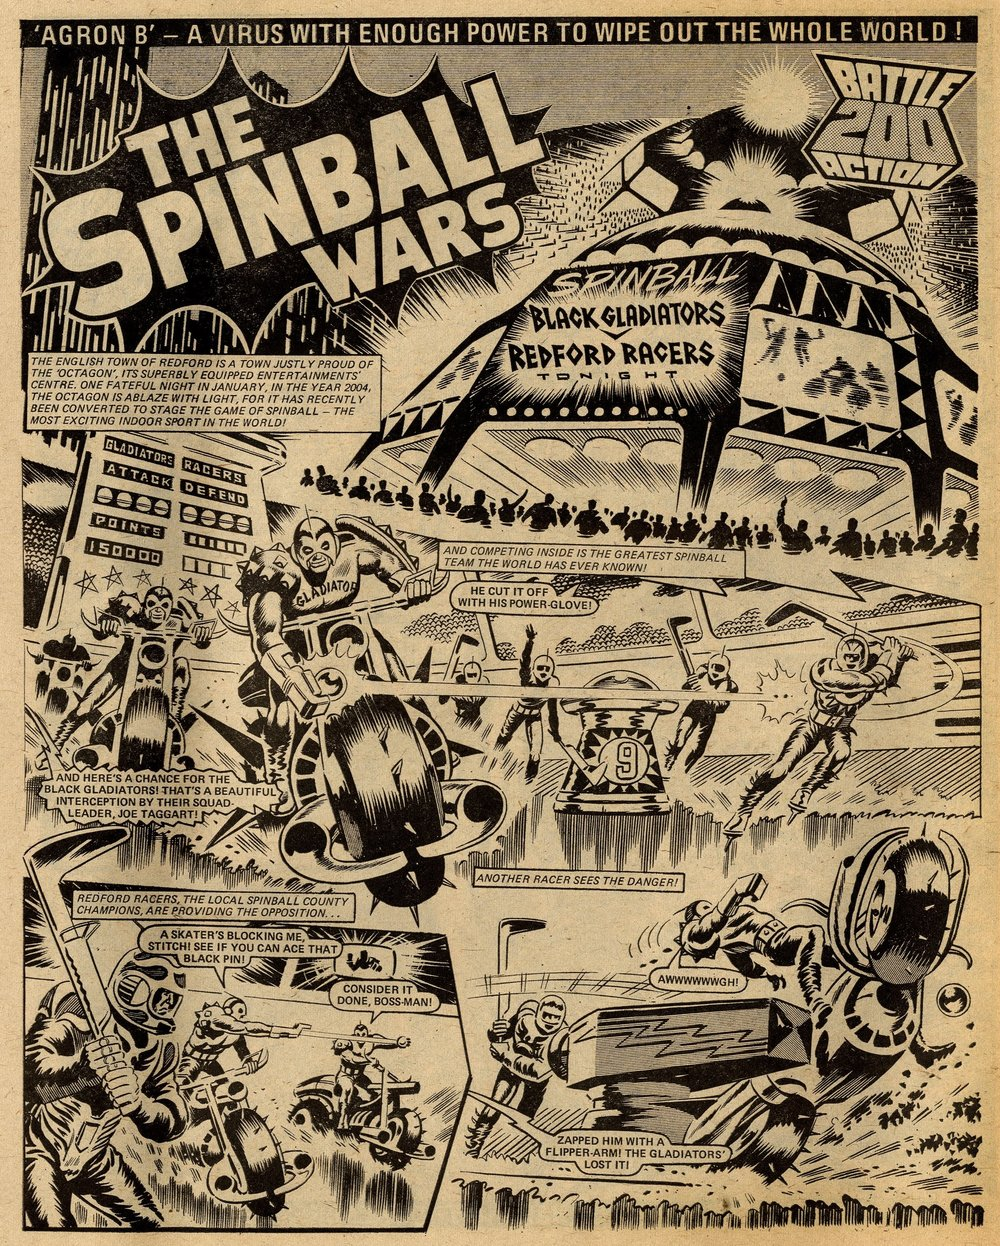 The Spinball Wars: Tom Tully (writer), Ron Turner (artist)